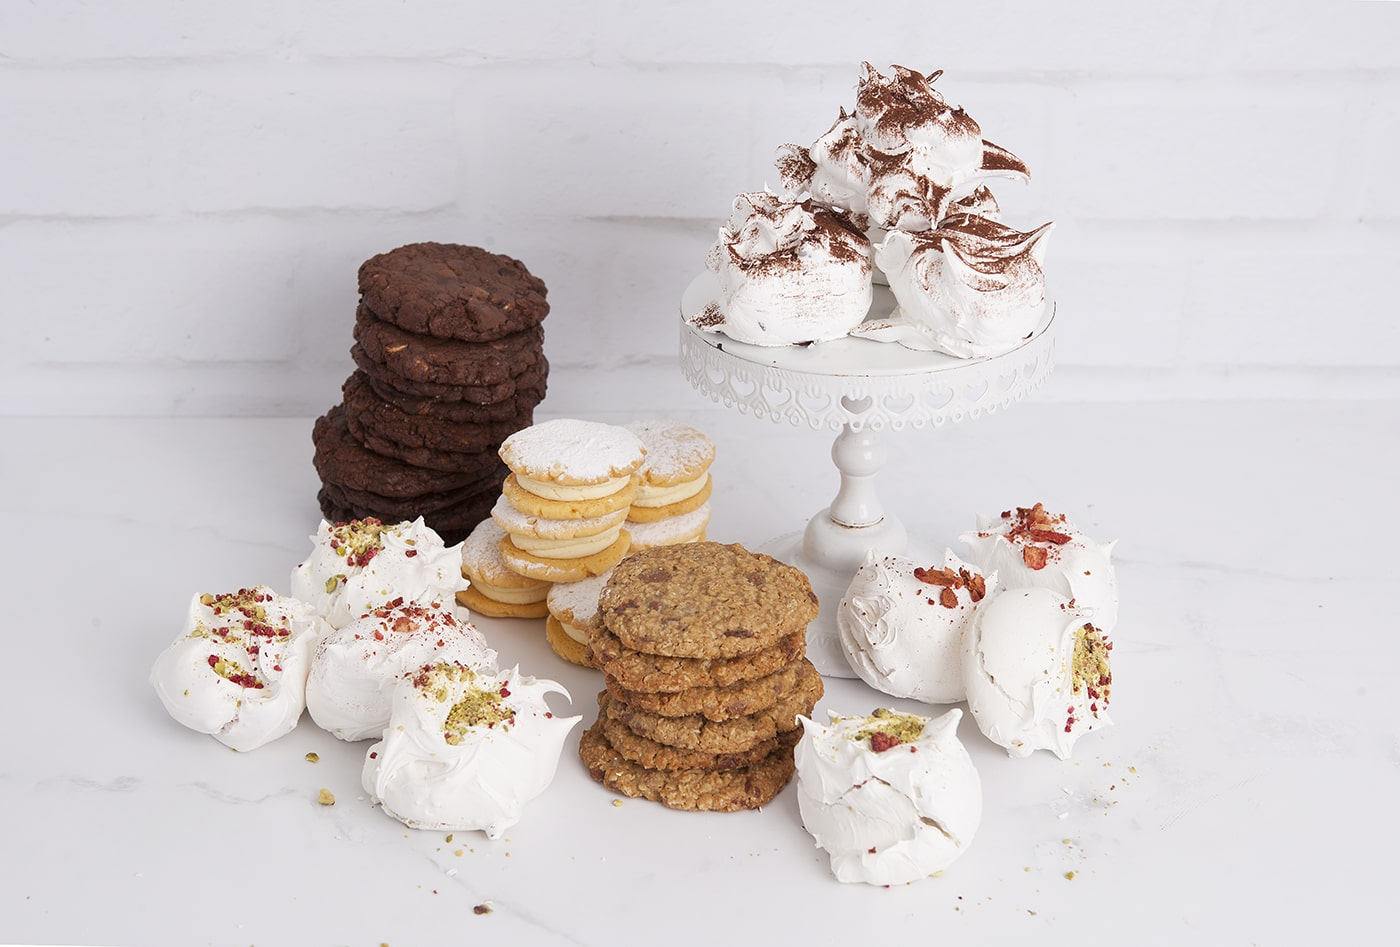 Amazing array of cookies and meringues as well as melting moments made fresh every day at Mrs Jones The Baker